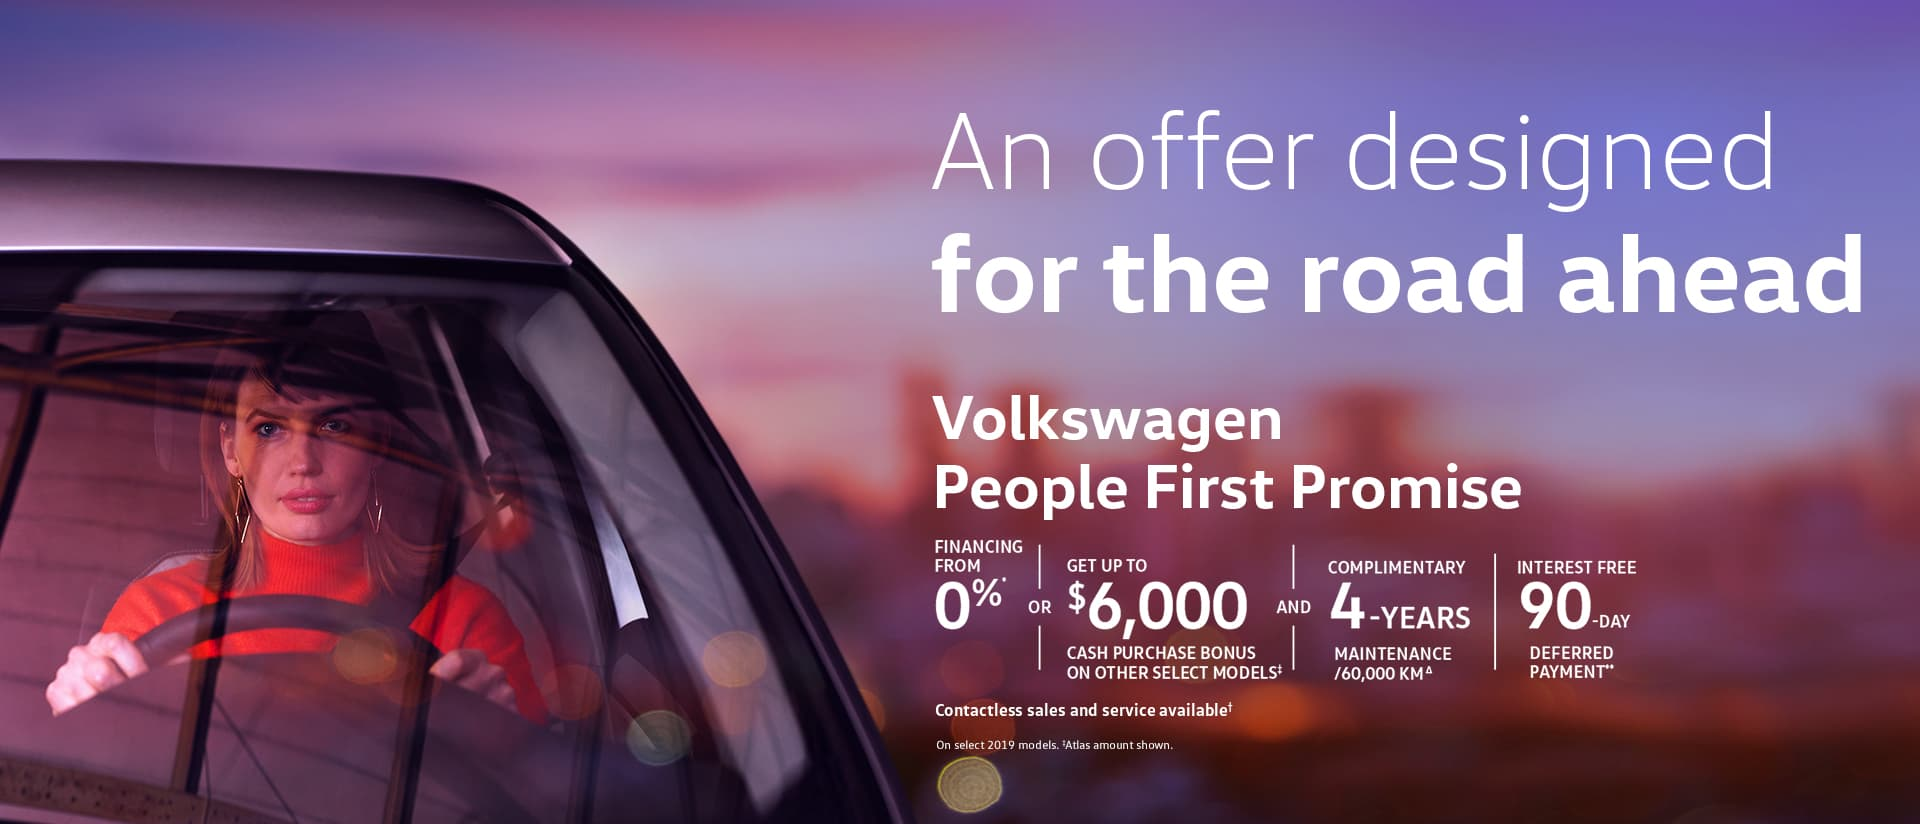 Vw20 June Offer